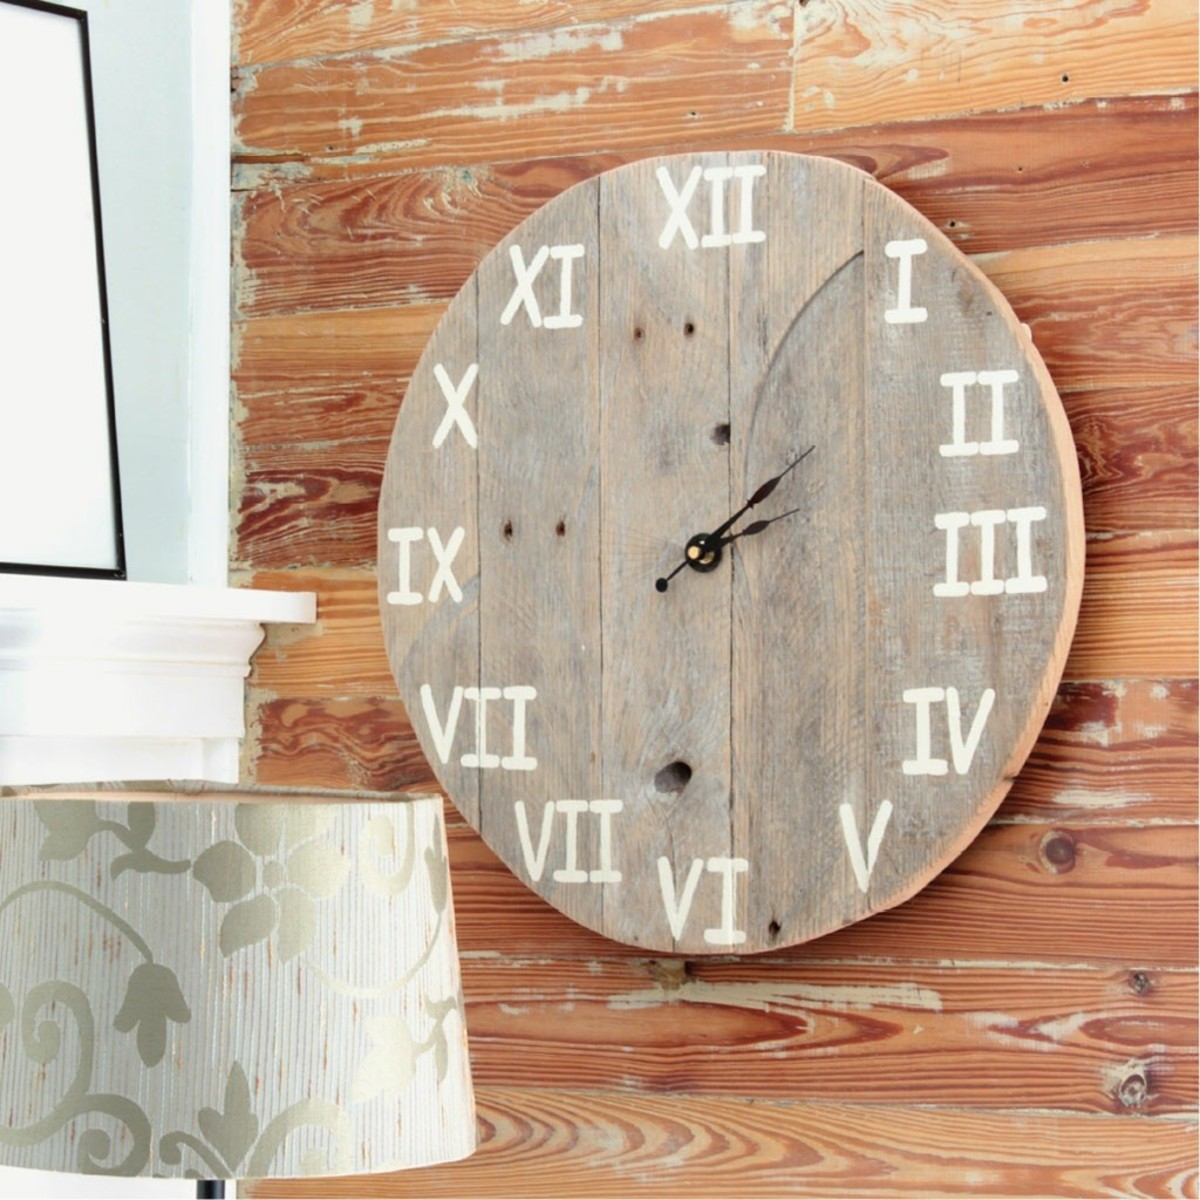 Guerilla Furniture Design - Rustic Wooden Clock (DIY Projects)